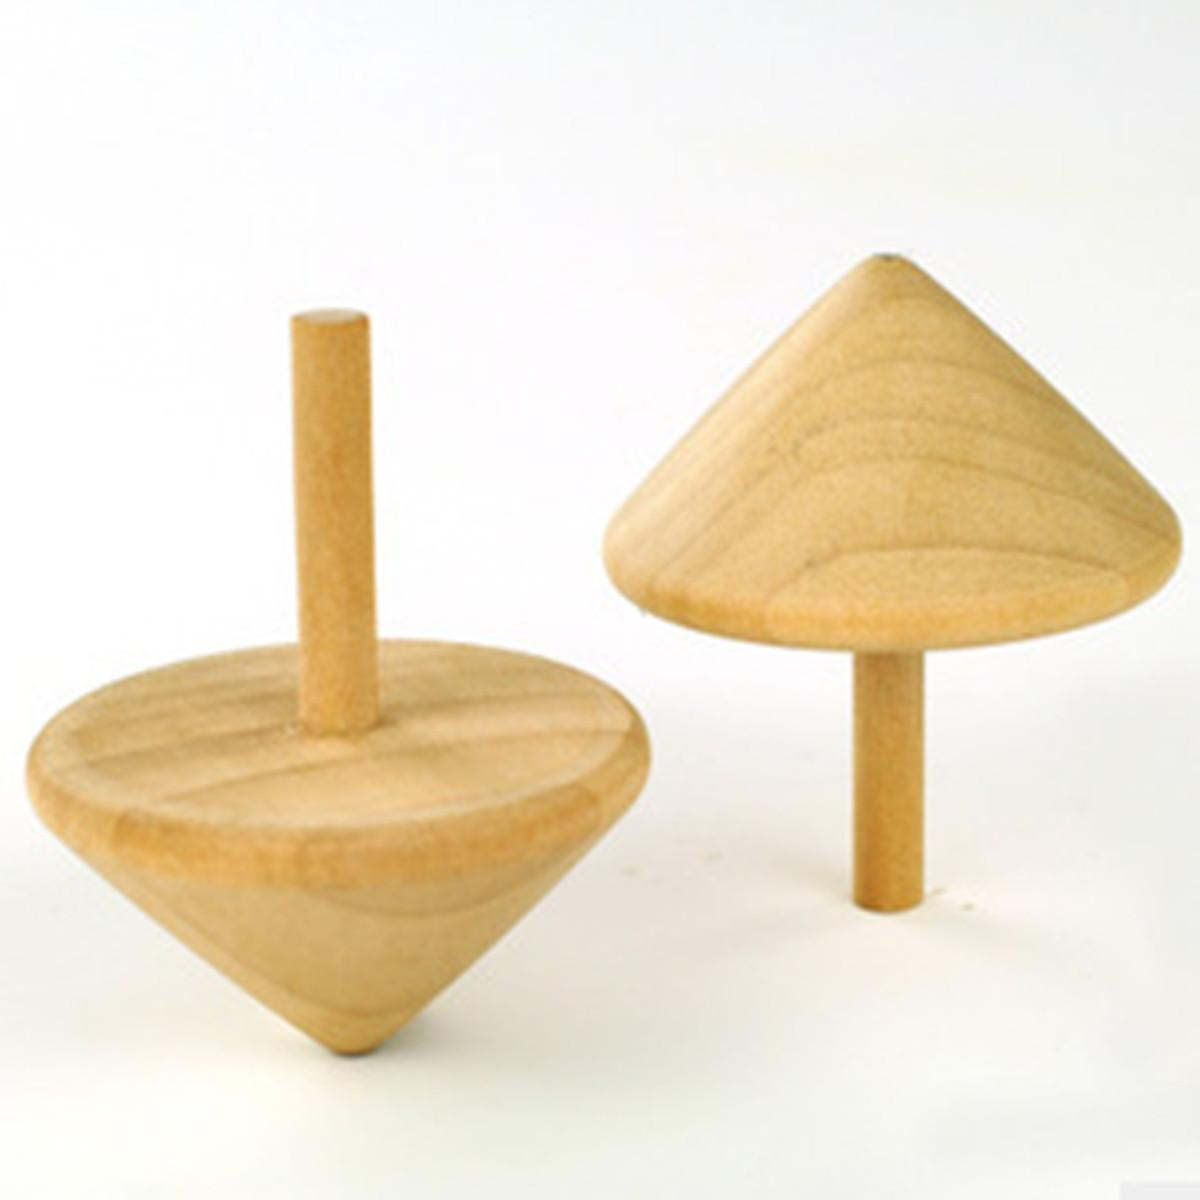 Wooden Toys For Toddlers : Traditional nostalgic wooden toys for children rotating